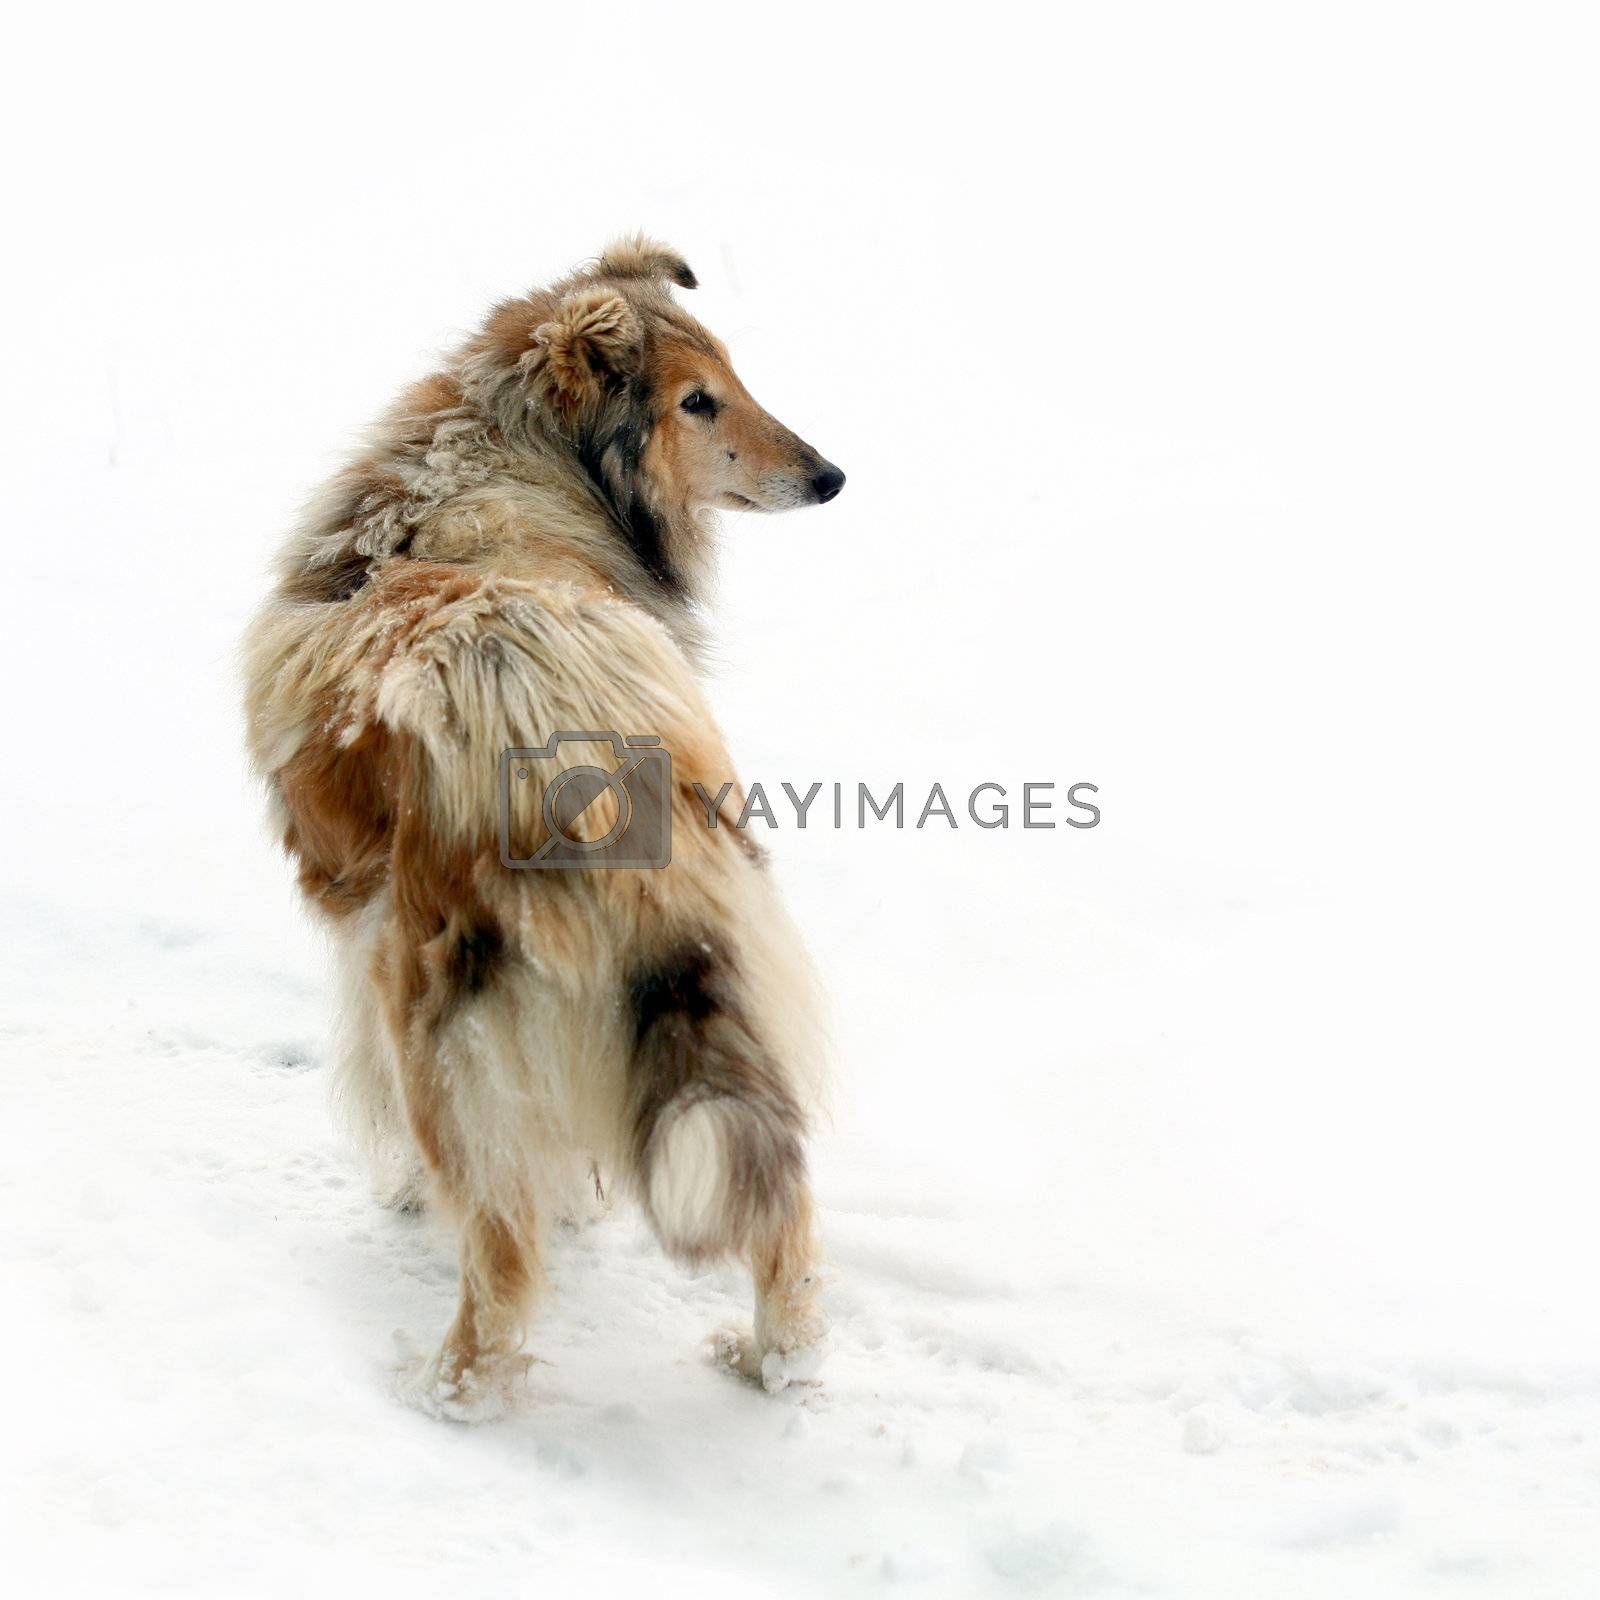 An image of a fluffy dog on white background